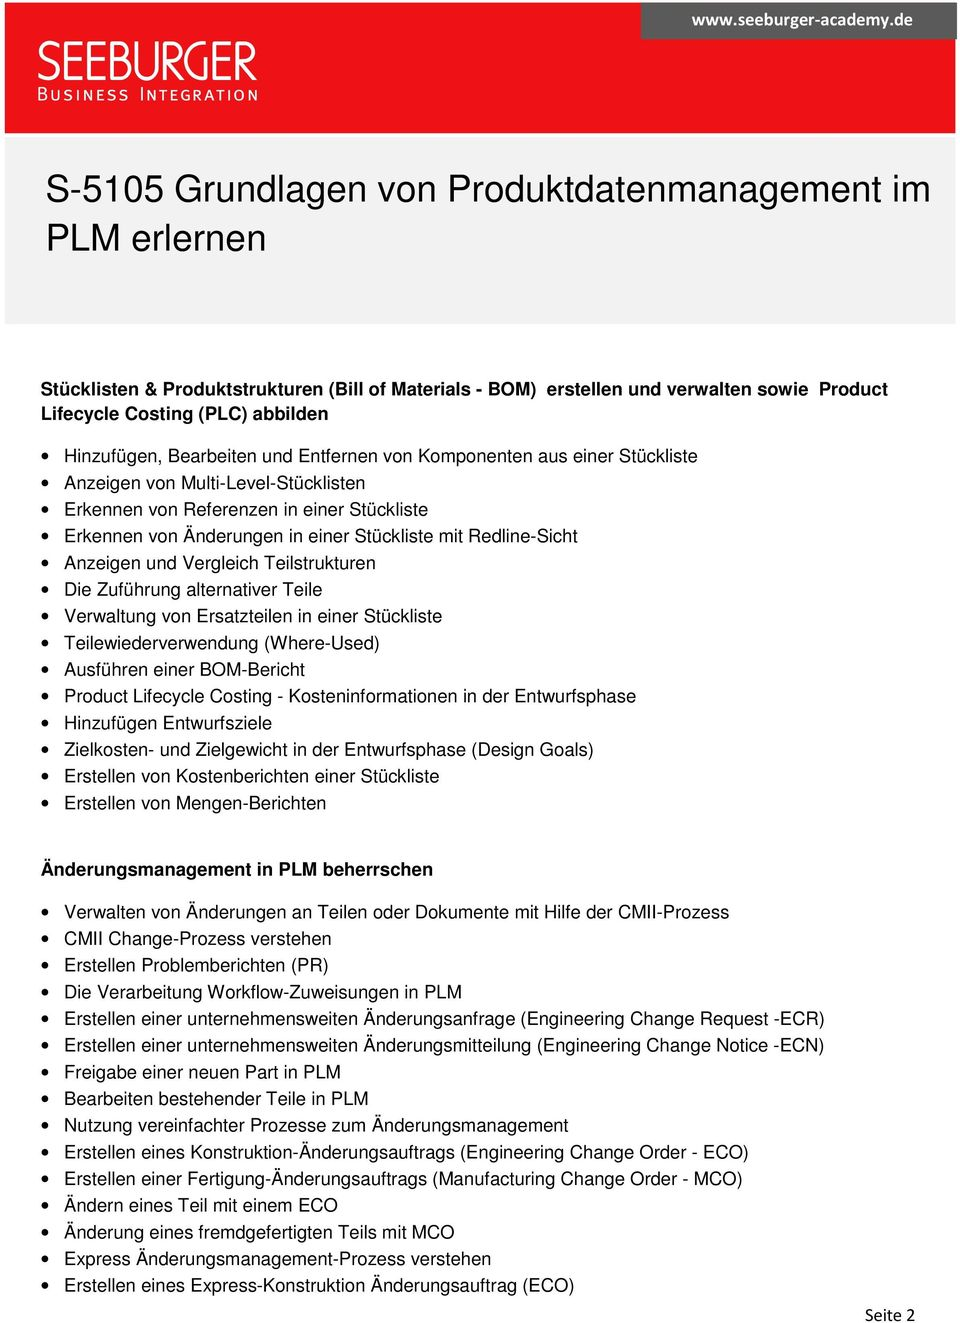 Zuführung alternativer Teile Verwaltung von Ersatzteilen in einer Stückliste Teilewiederverwendung (Where-Used) Ausführen einer BOM-Bericht Product Lifecycle Costing - Kosteninformationen in der